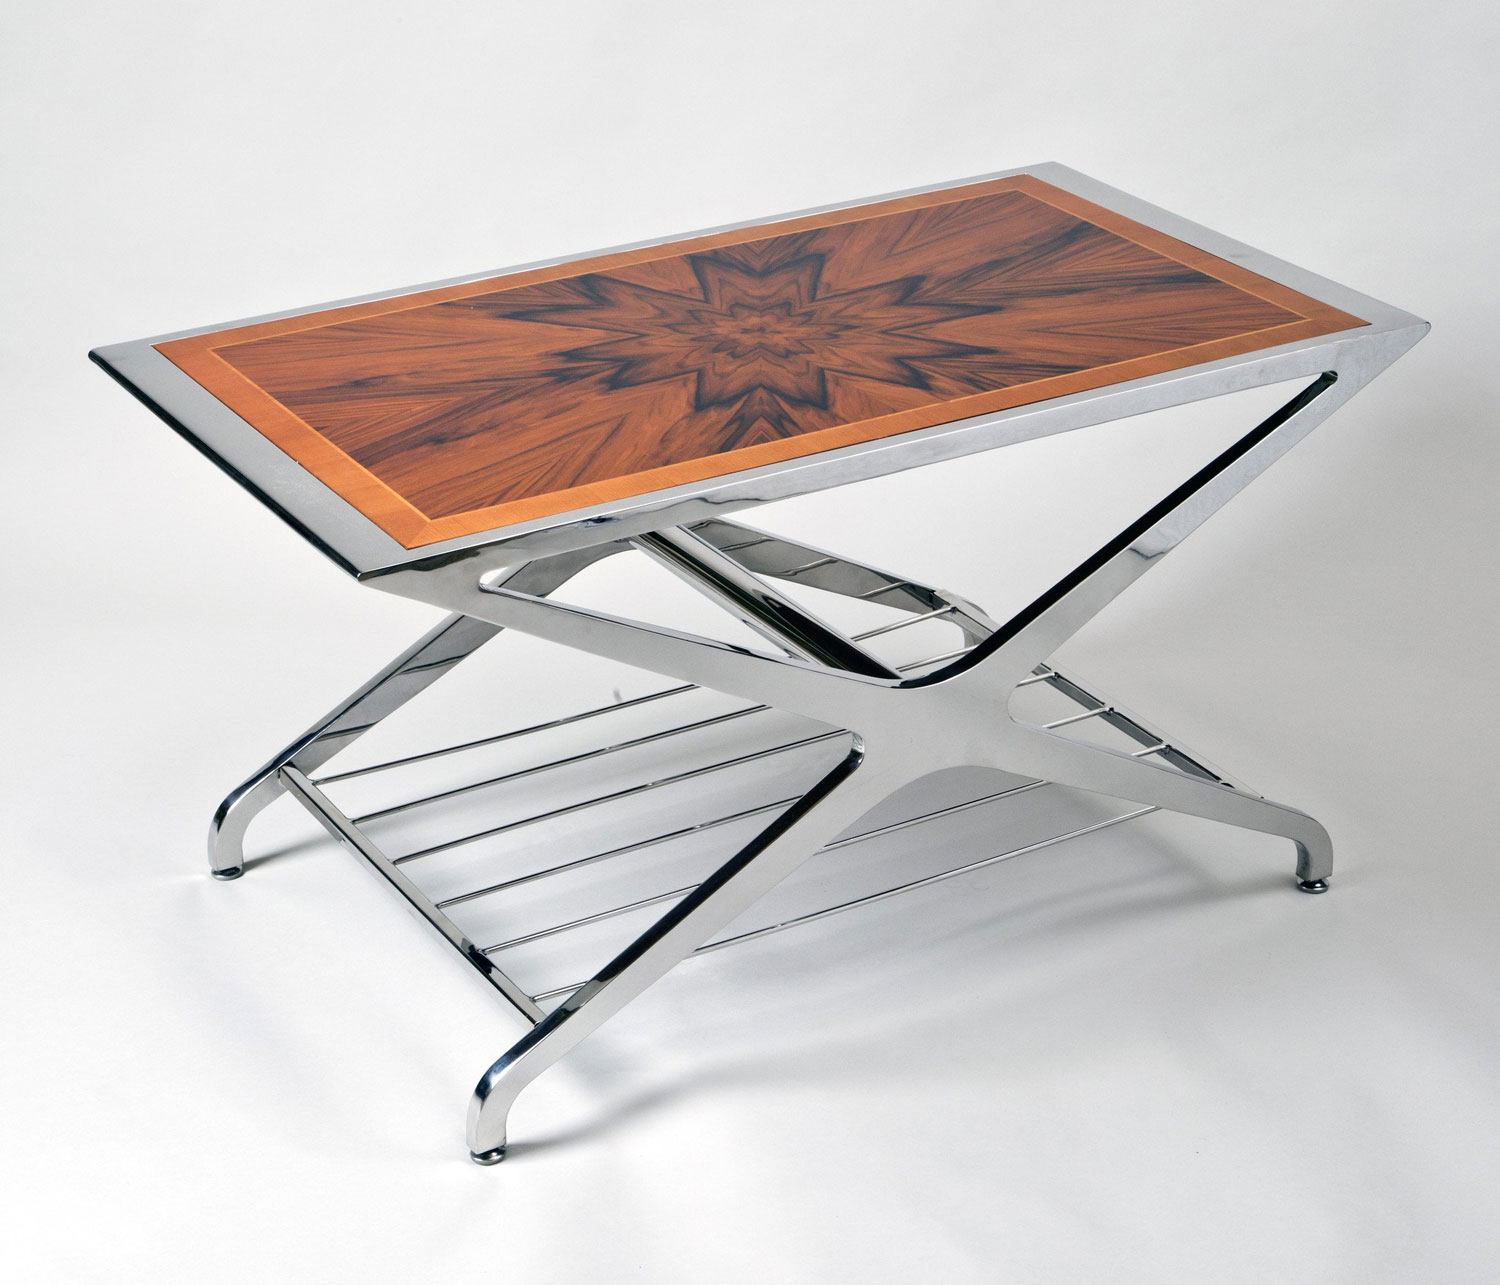 The X Table: Polished stainless steel coffee table with marquetry wood sunburst top.